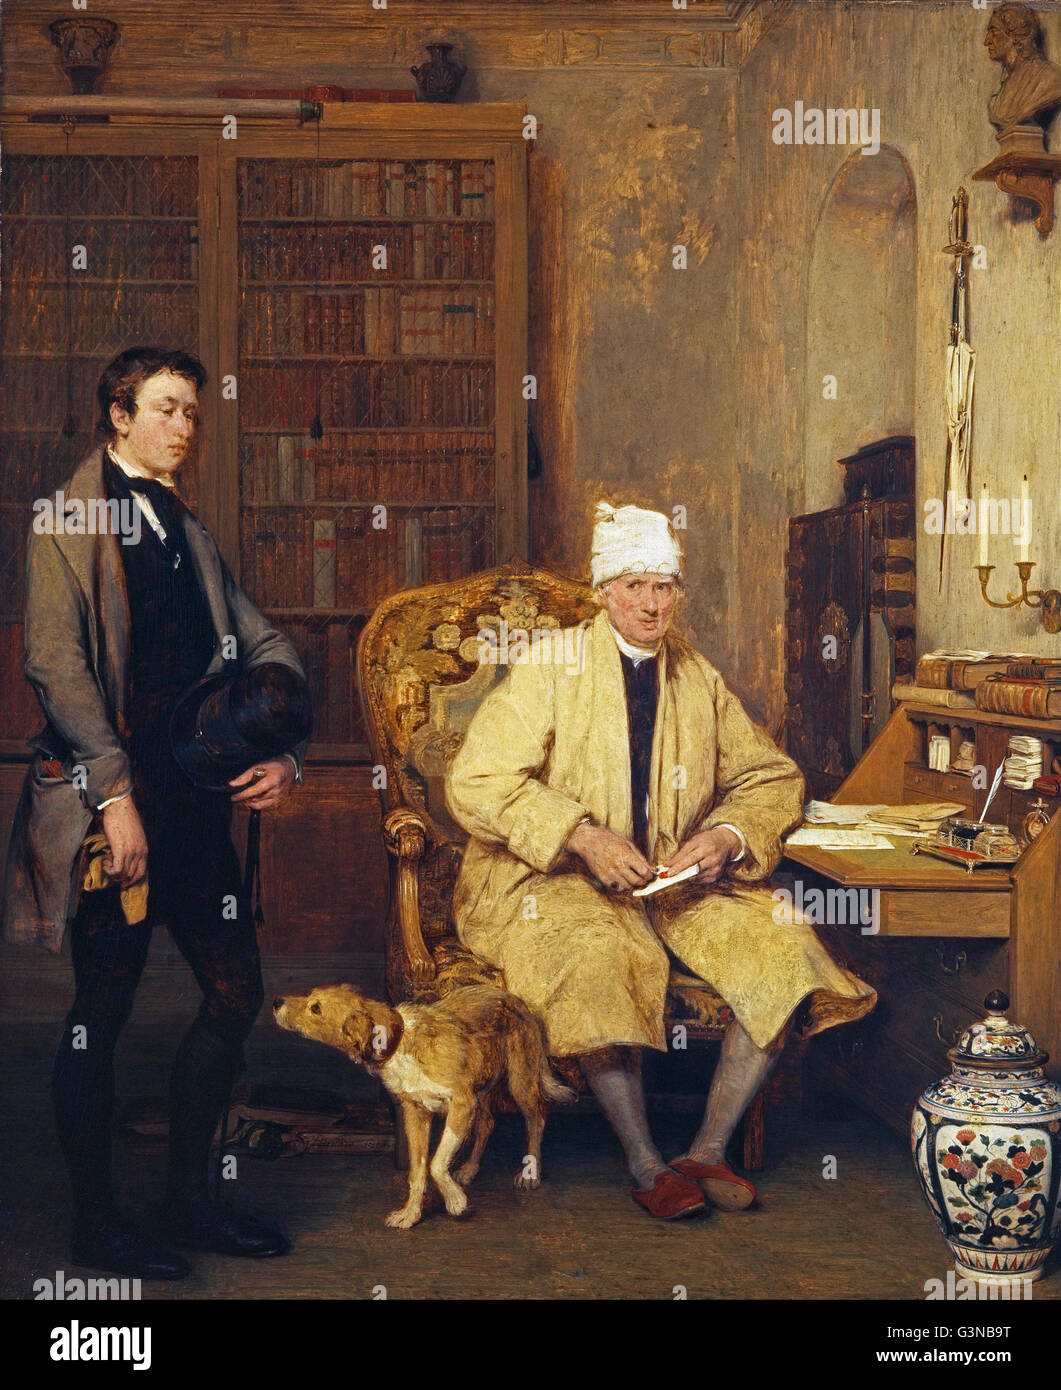 Sir David Wilkie - The Letter of Introduction - Stock Image